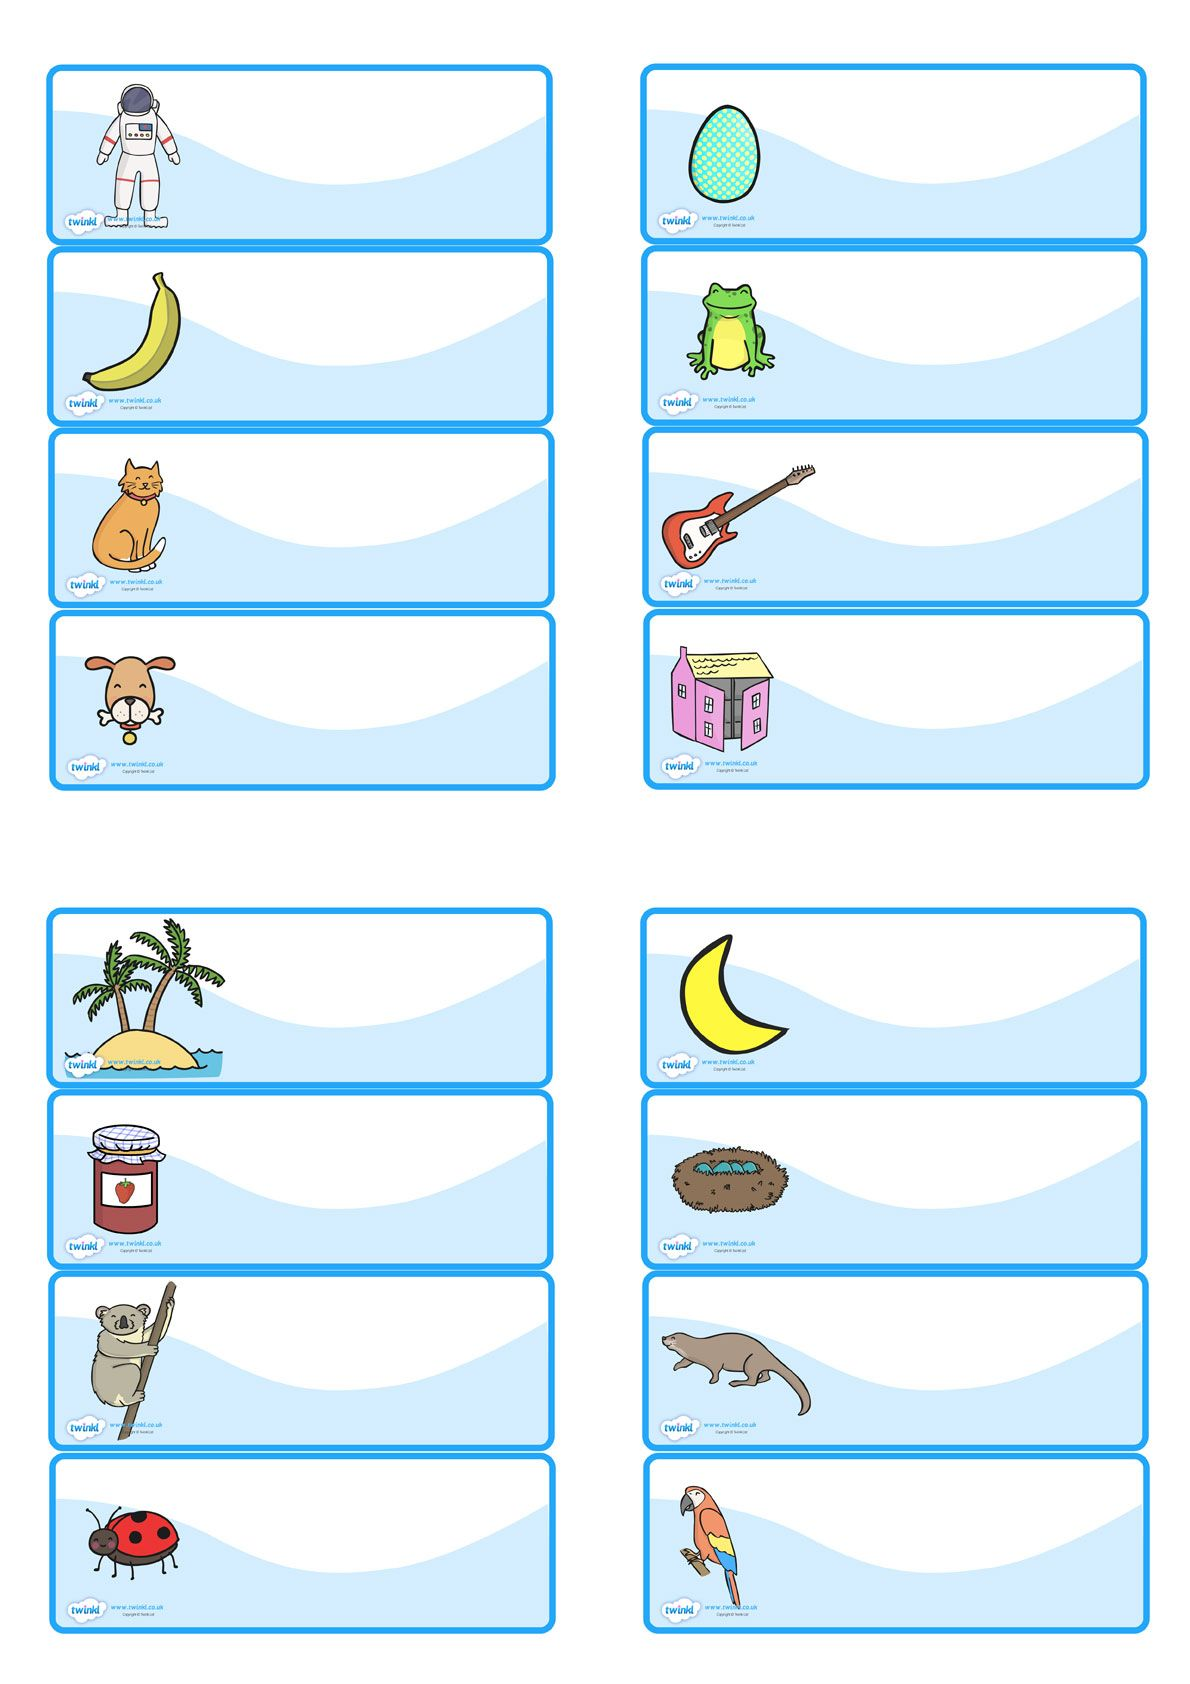 Twinkl Resources Gt Gt Editable Draw Labels Gt Gt Thousands Of Printable Primary Teaching Resources